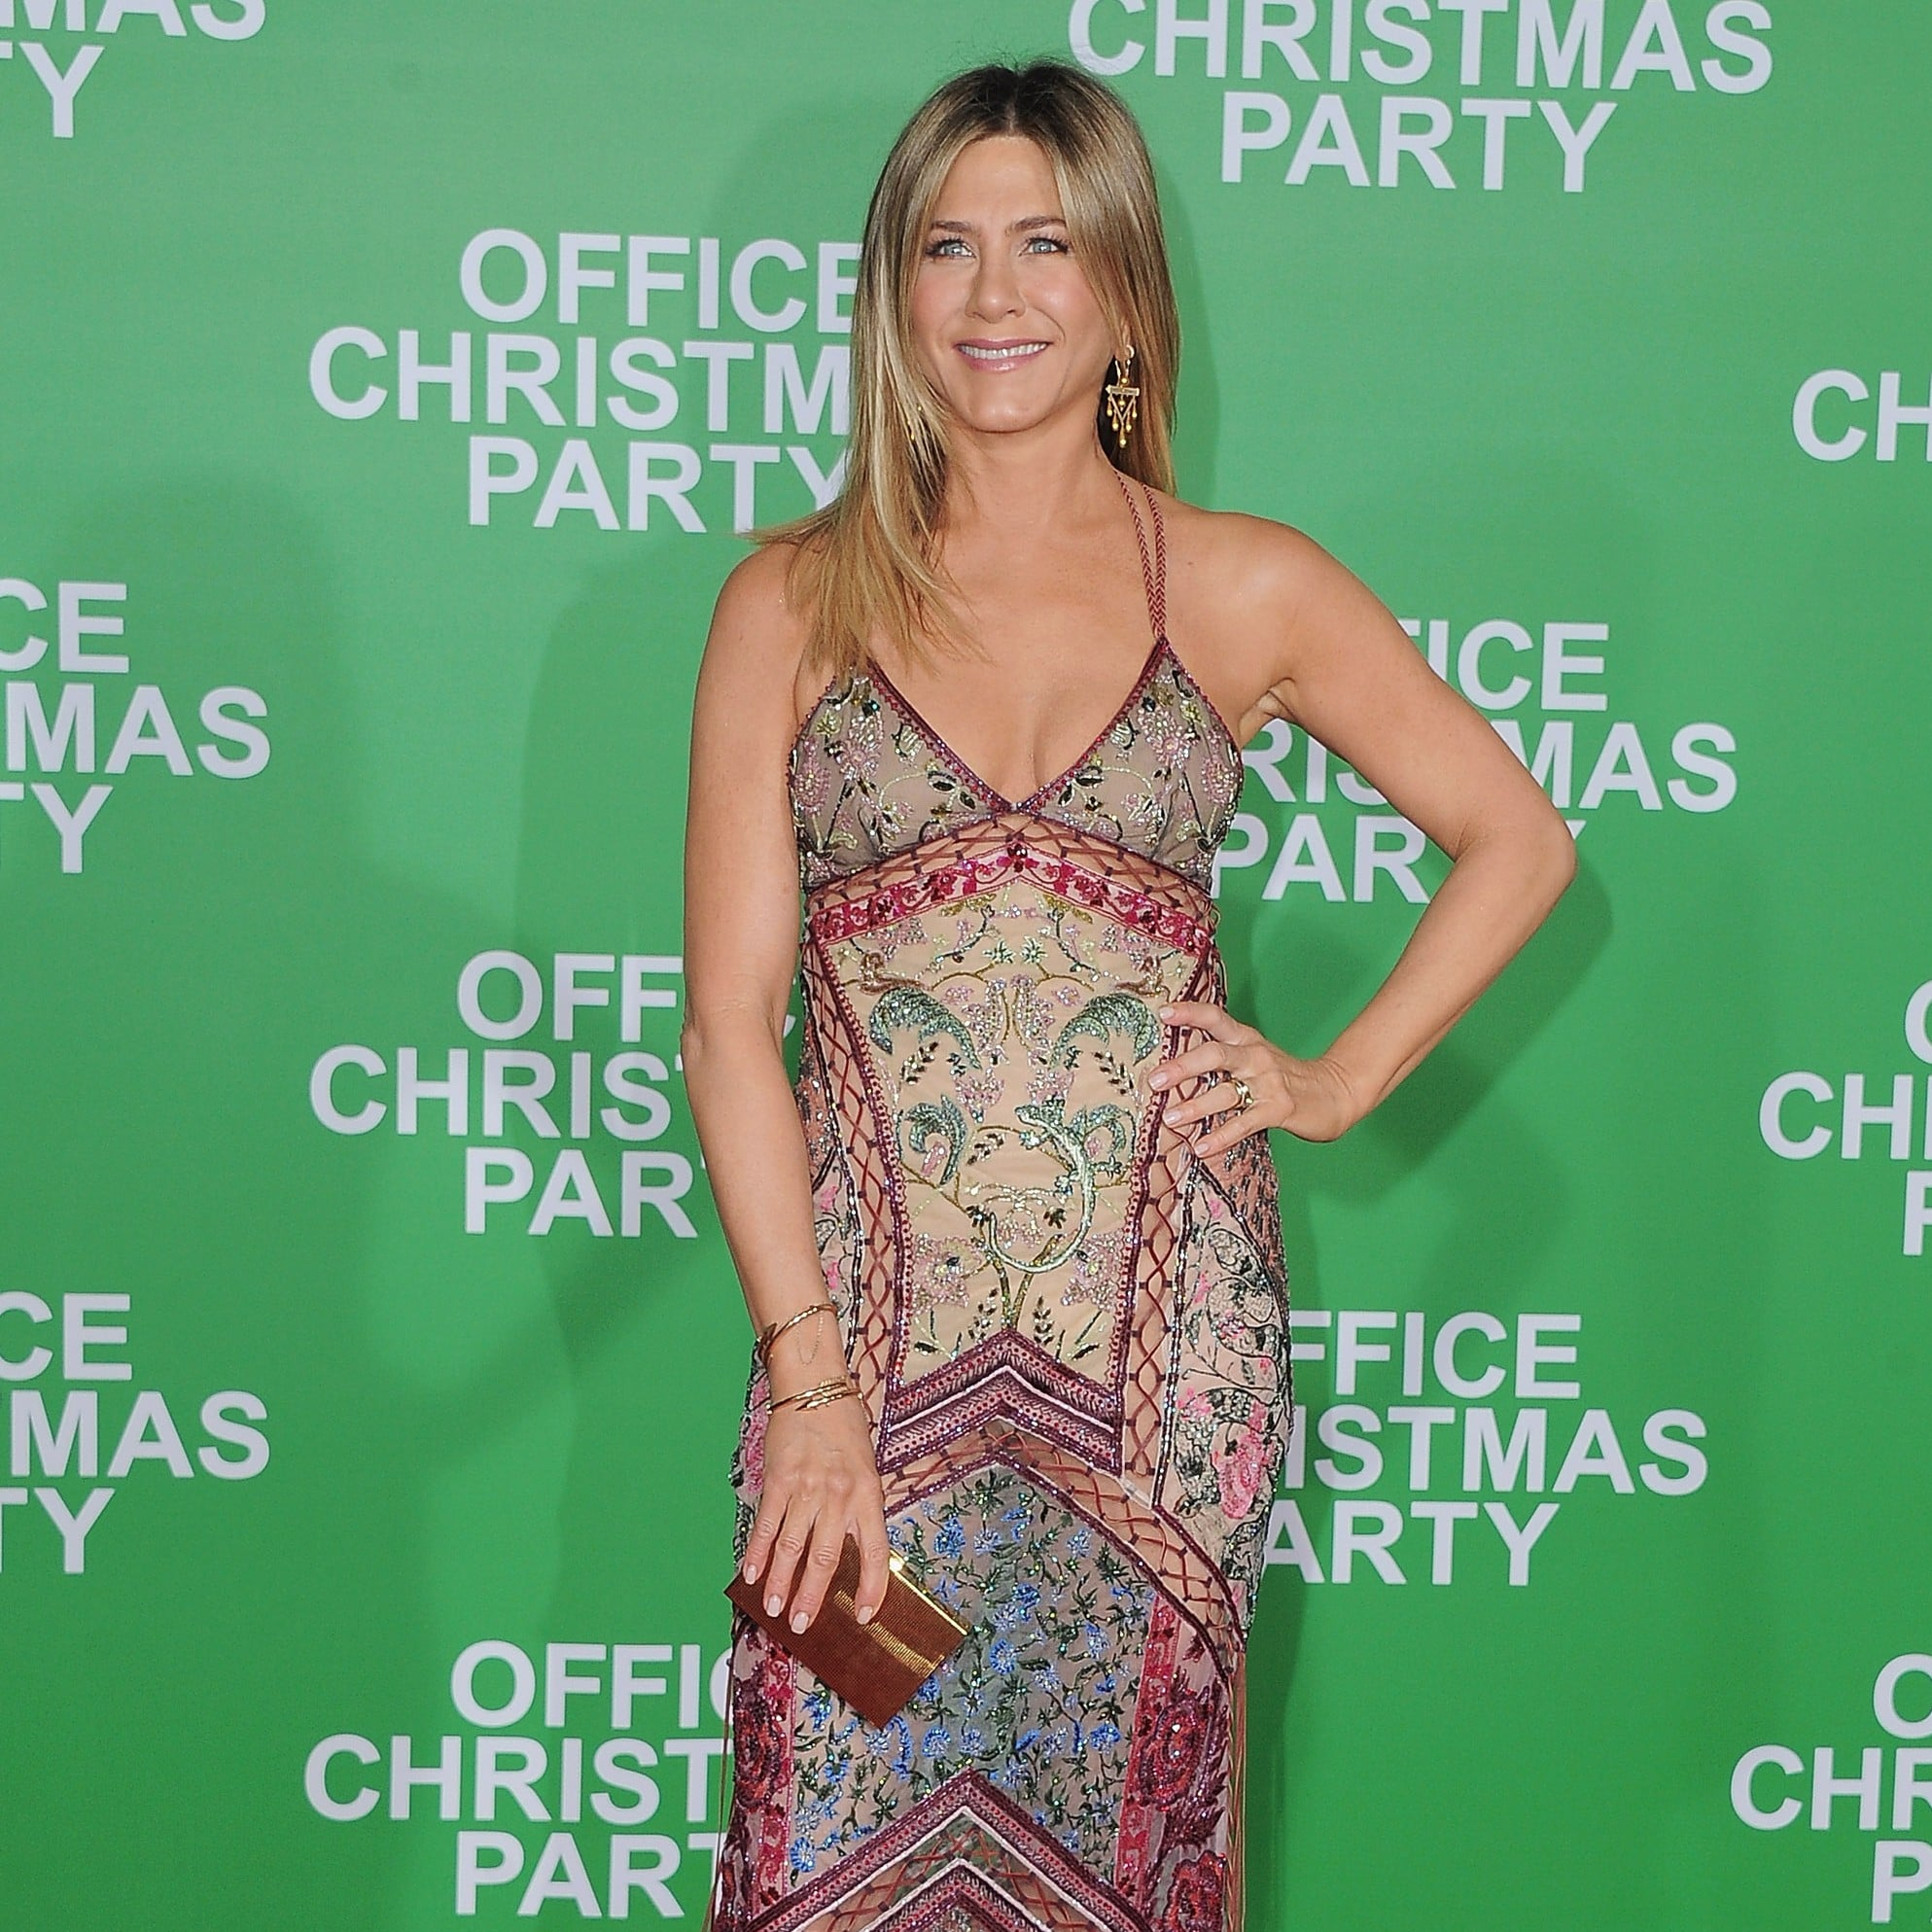 Jennifer Aniston Attended the Office Christmas Party Premiere in LA ...